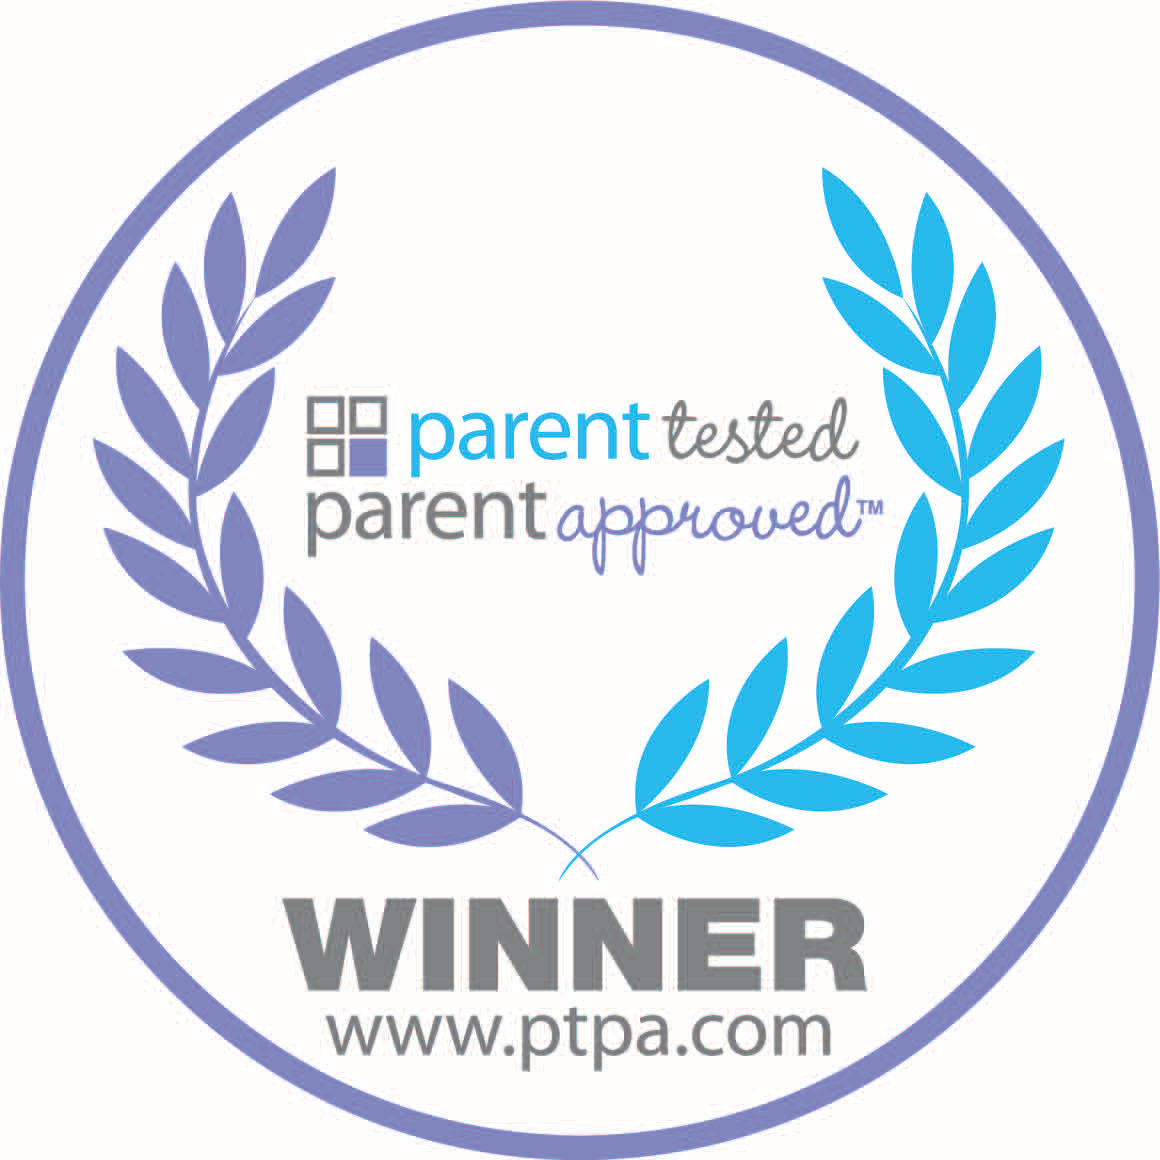 image-parent-tested-parent-approved-Seal-Of-Approval-Award